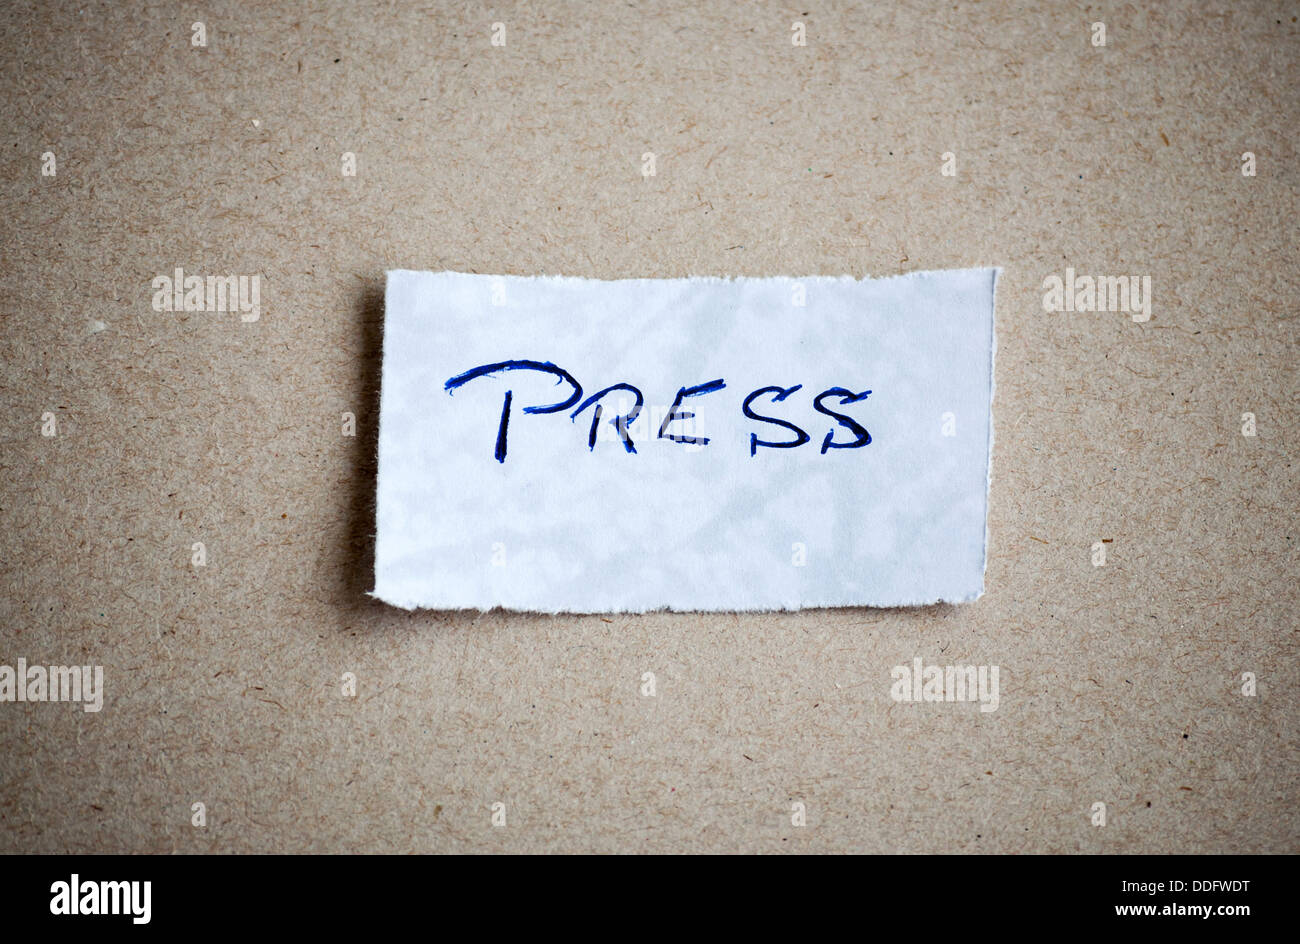 Press message,written on piece of paper, on cardboard background. Space for your text. - Stock Image